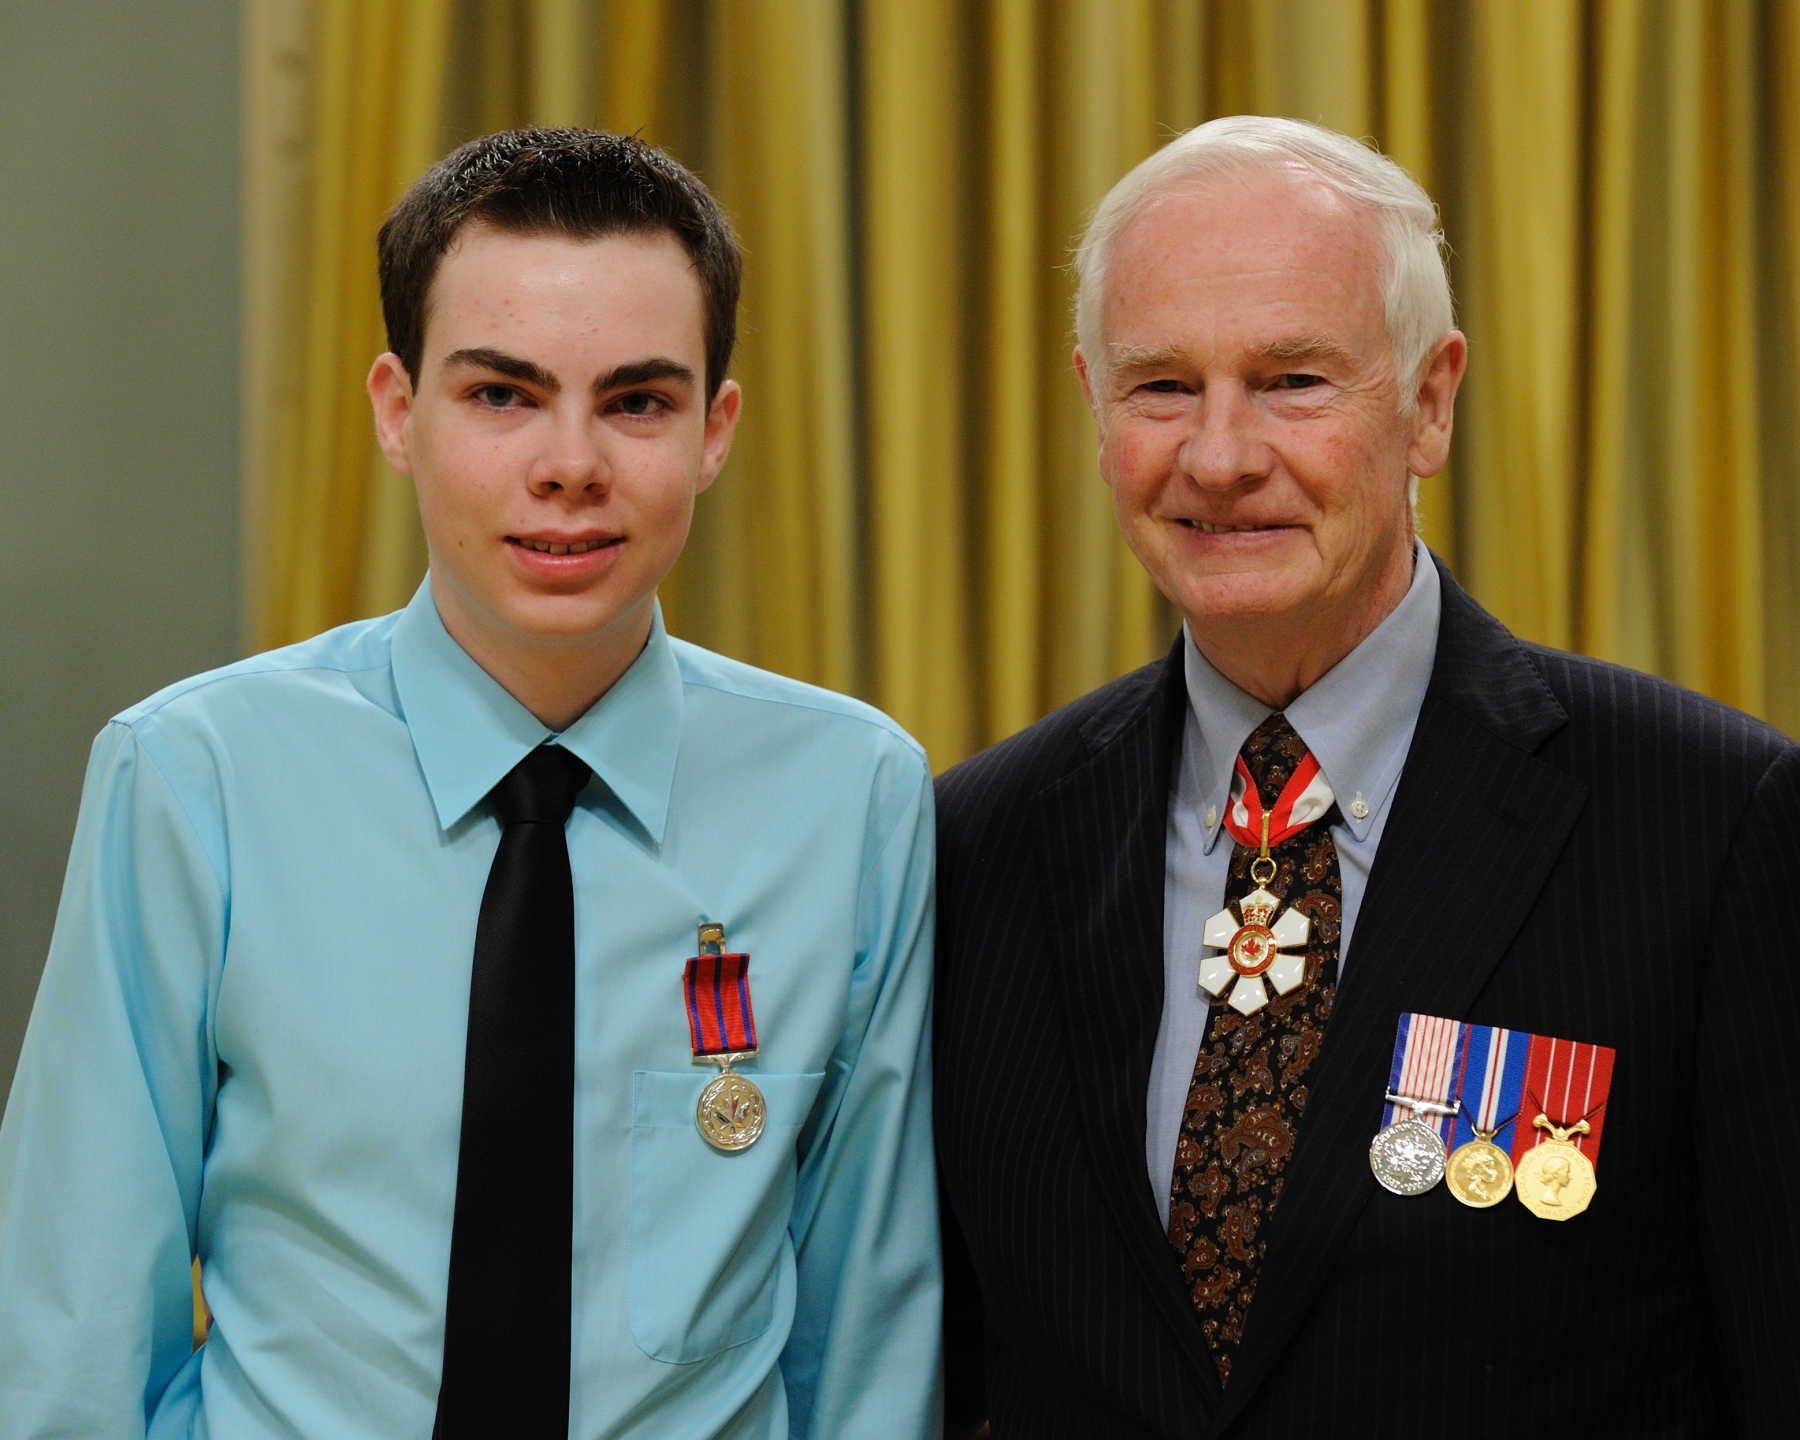 On January 31, 2009, 14-year-old Scott Borlase, M.B., was instrumental in keeping his sister safe during a snowstorm on Lake Winnipeg, in Manitoba. Scott, his 11-year-old sister, and their father had started their snowmobile outing on a clear morning, but by early afternoon the weather had changed. They lost sight of the marked trail due to the severe winds and heavy snowfall. At one point, Scott's father got off the snowmobile and collapsed to the ground. Unable to find a pulse, Scott made the decision to go for help with his sister. In the blinding storm, Scott drove in a straight line hoping to eventually reach the shoreline. Once at the shore, Scott was able to use his cell phone to call 911 and provide directions to their location. He brought his sister into a bush area away from the biting wind, and used a solar blanket to keep them warm until help finally arrived several hours later. Another search party located his father who, sadly, did not survive.